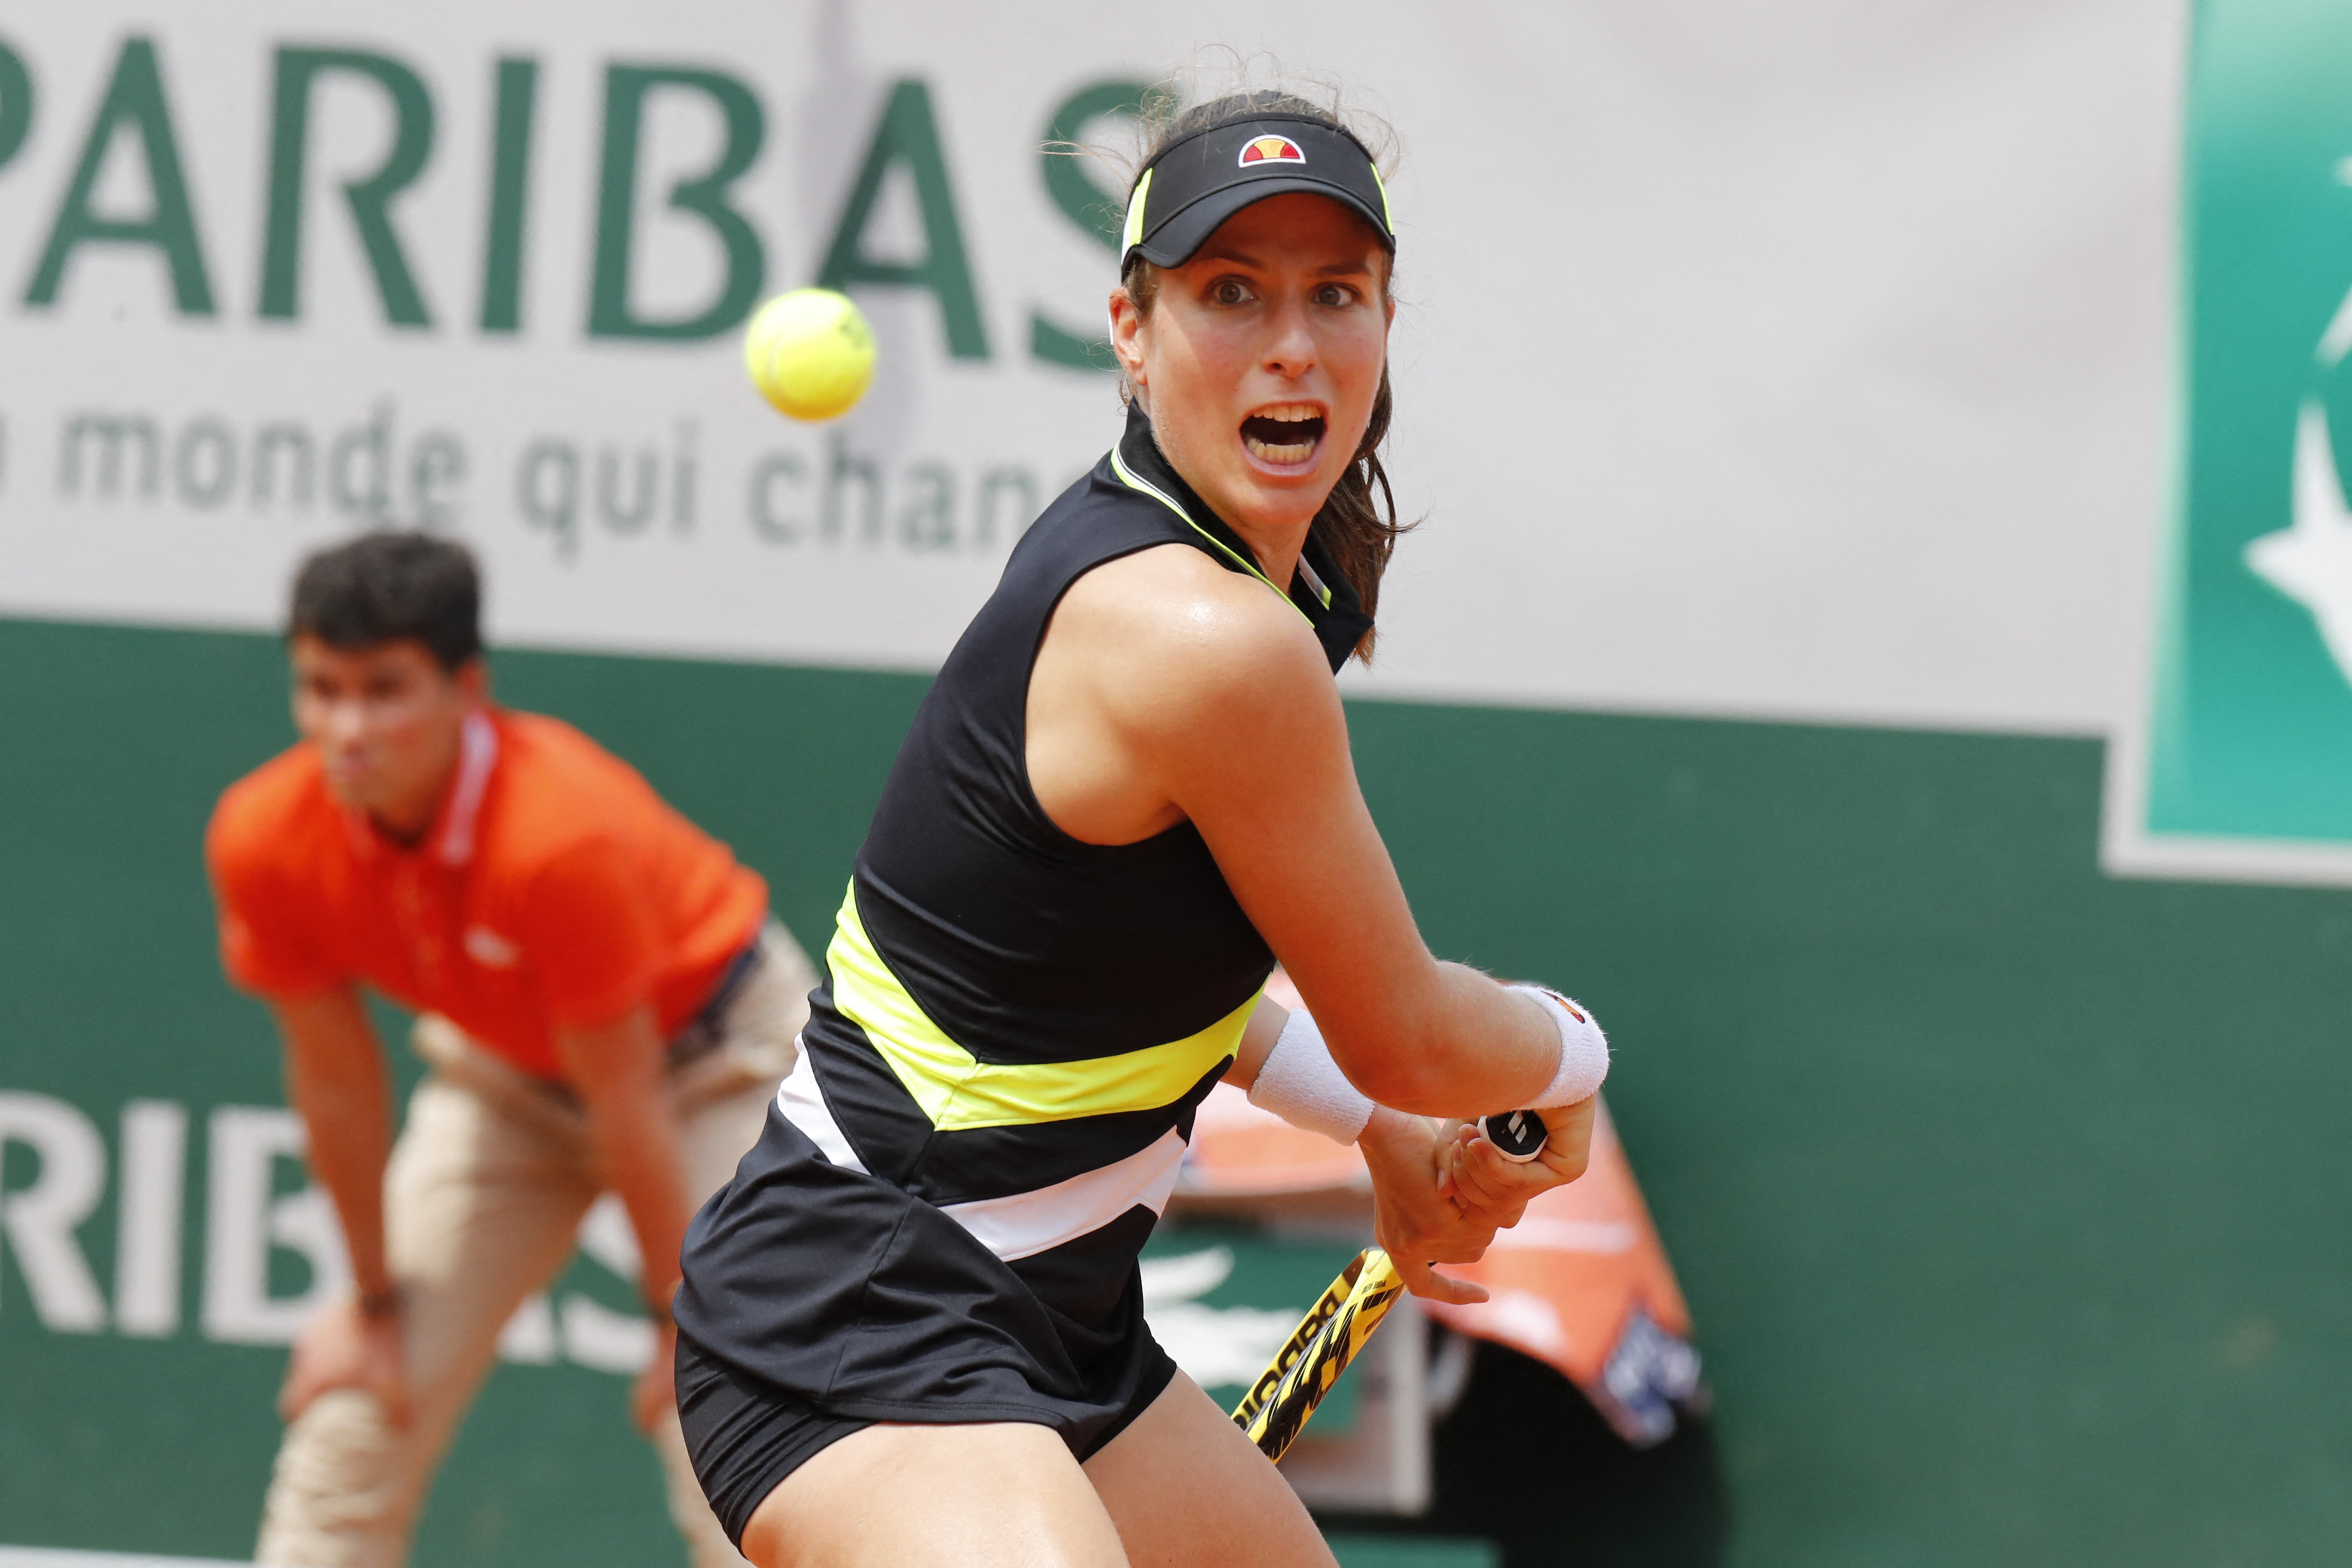 Konta reached the semi final at Roland Garros, beating Sloane Stephens in the quarter. Image: PA Images